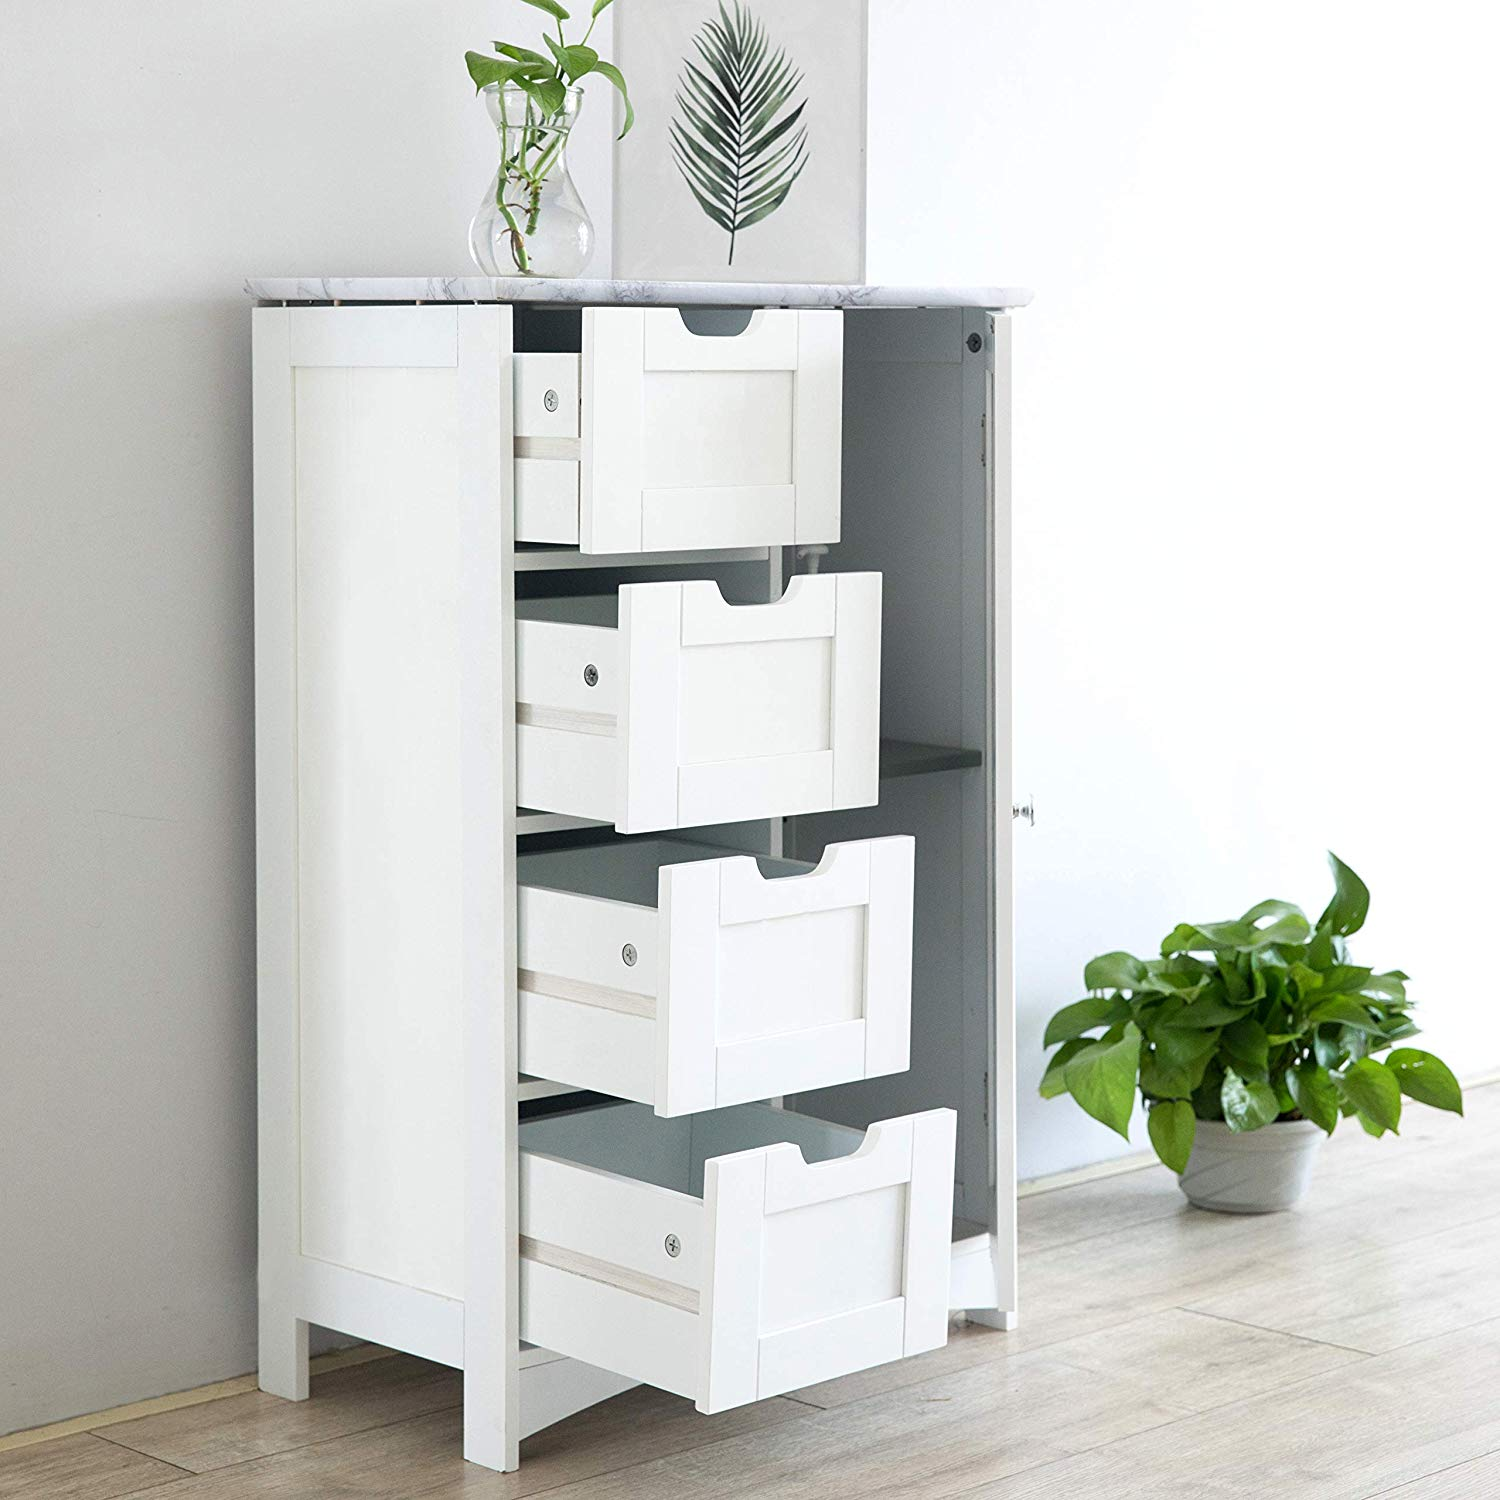 Picture of: Free Standing Wooden Bathroom Cabinet With 1 Door Cupboard And 4 Drawer Marble Effect Top Bat 01 White Shop Designer Home Furnishings